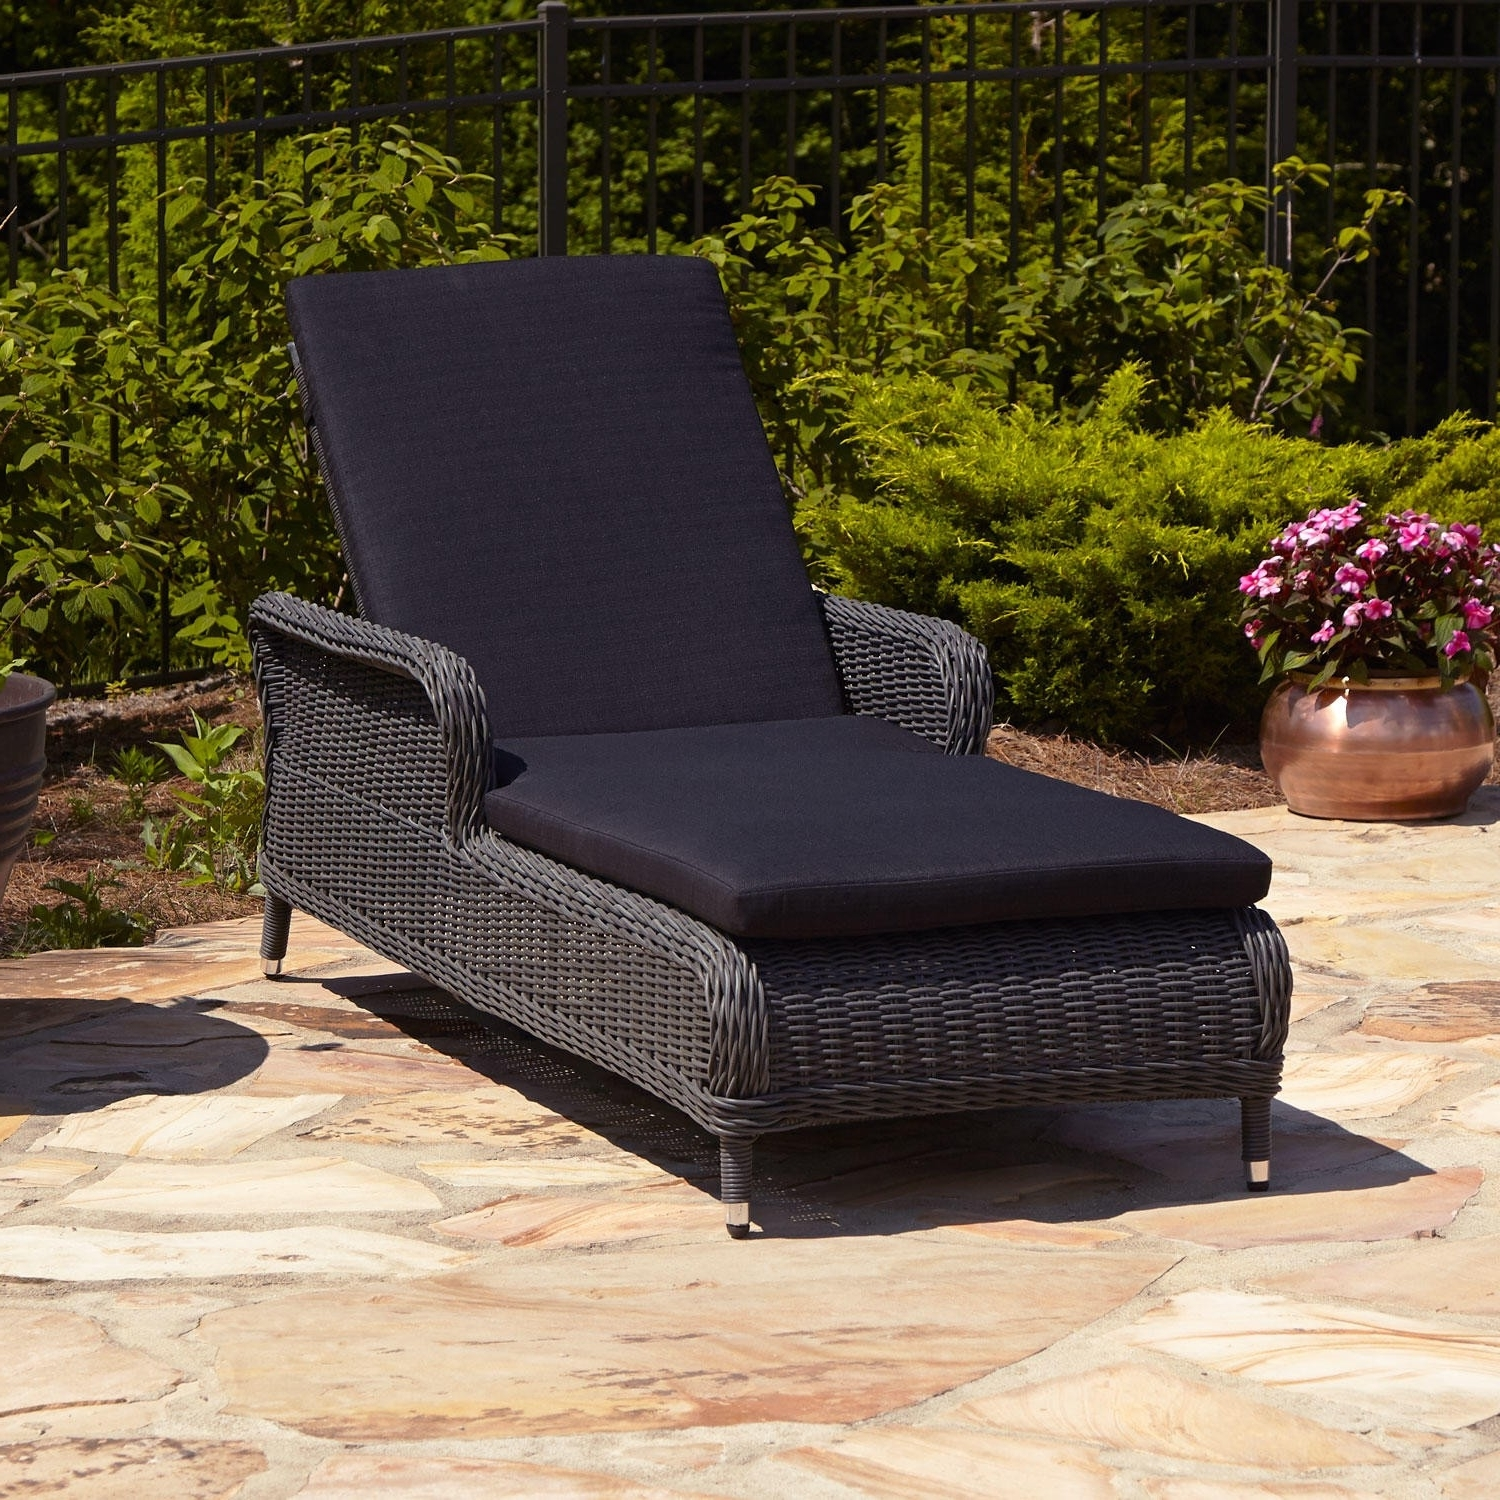 Outdoor Wicker Chaise Lounges Intended For Popular Remarkable Wicker Chaise Lounge Chair Gray Patio Furniture All (View 14 of 15)